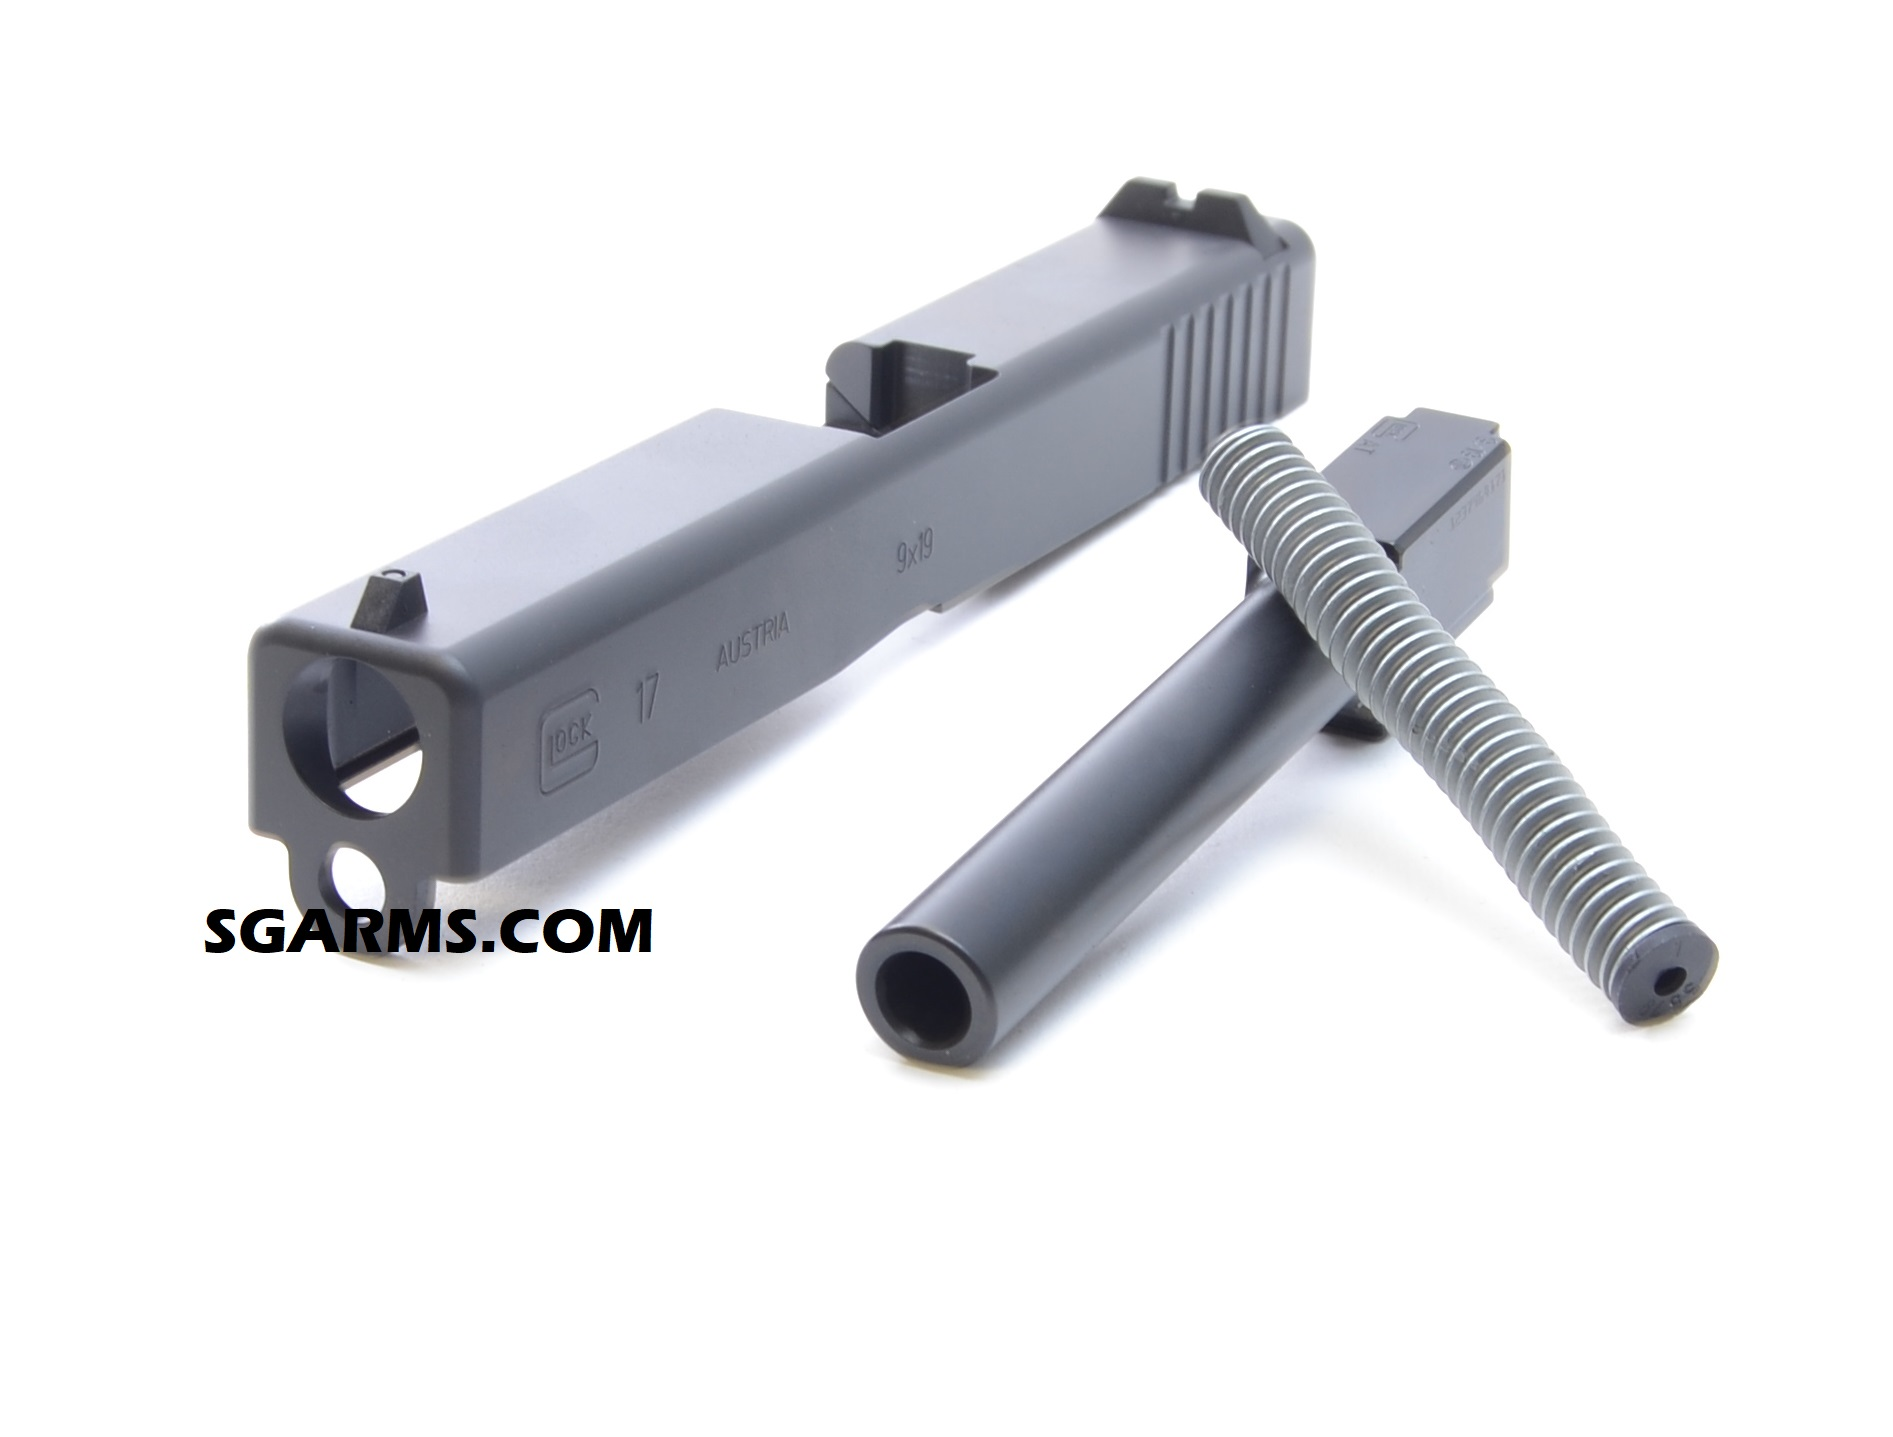 Glock 17 Complete Build Kits With Complete Slide and p80 - $429 after code